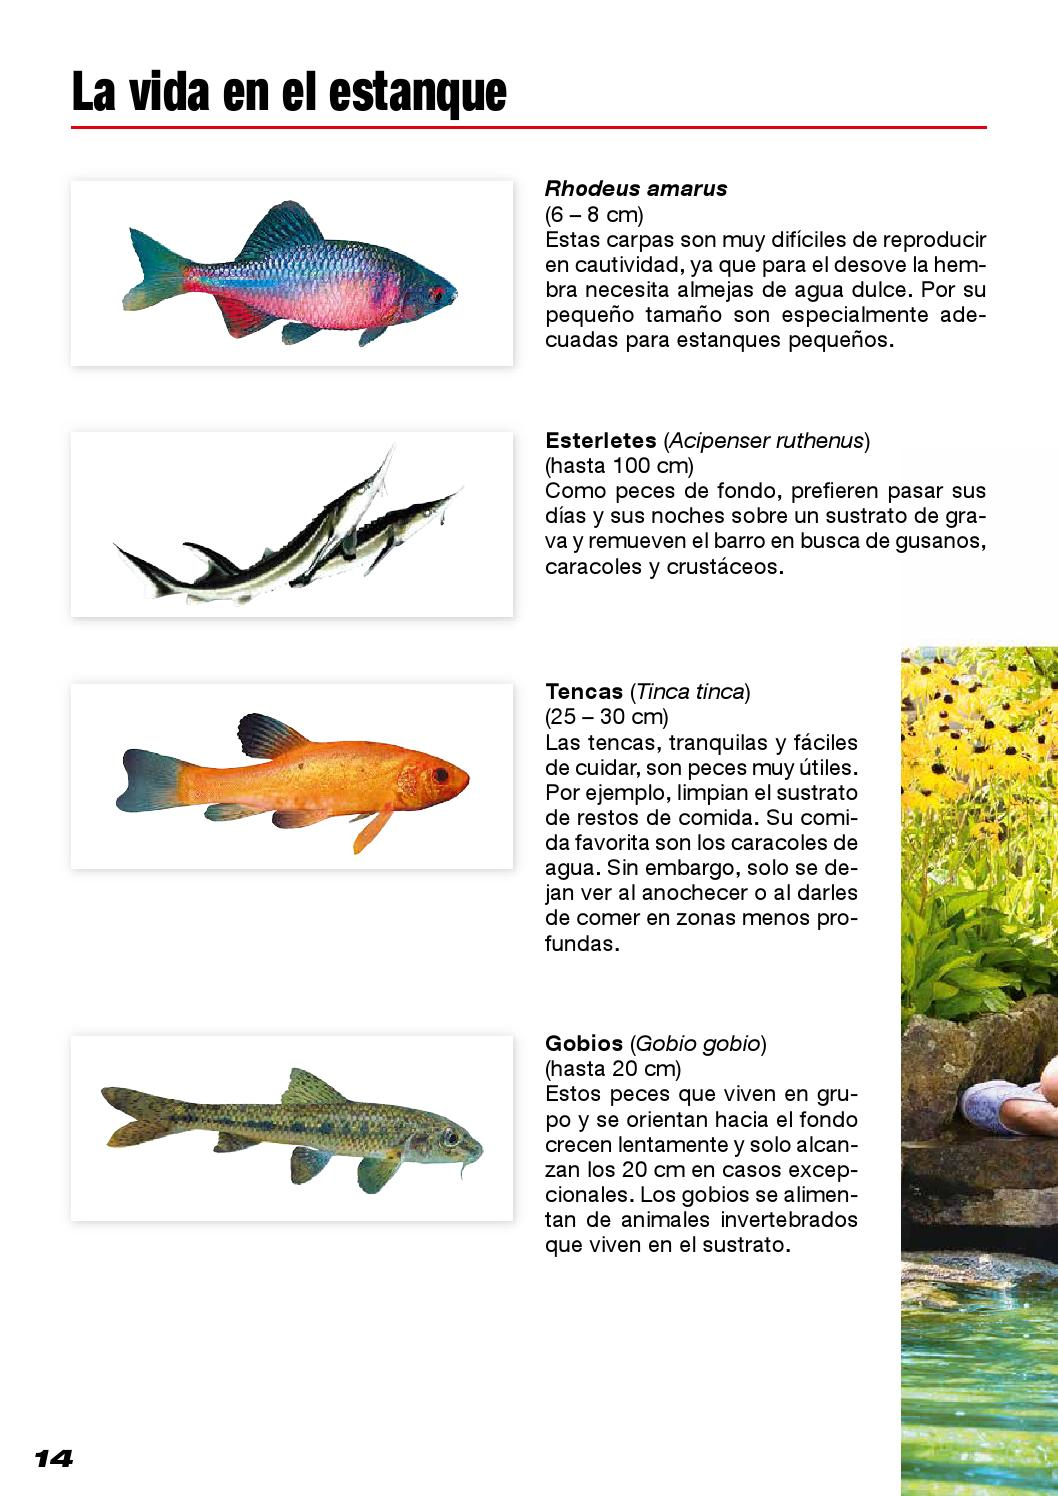 Mi estanque de jard n by la magia de los peces for Peces en estanques pequenos